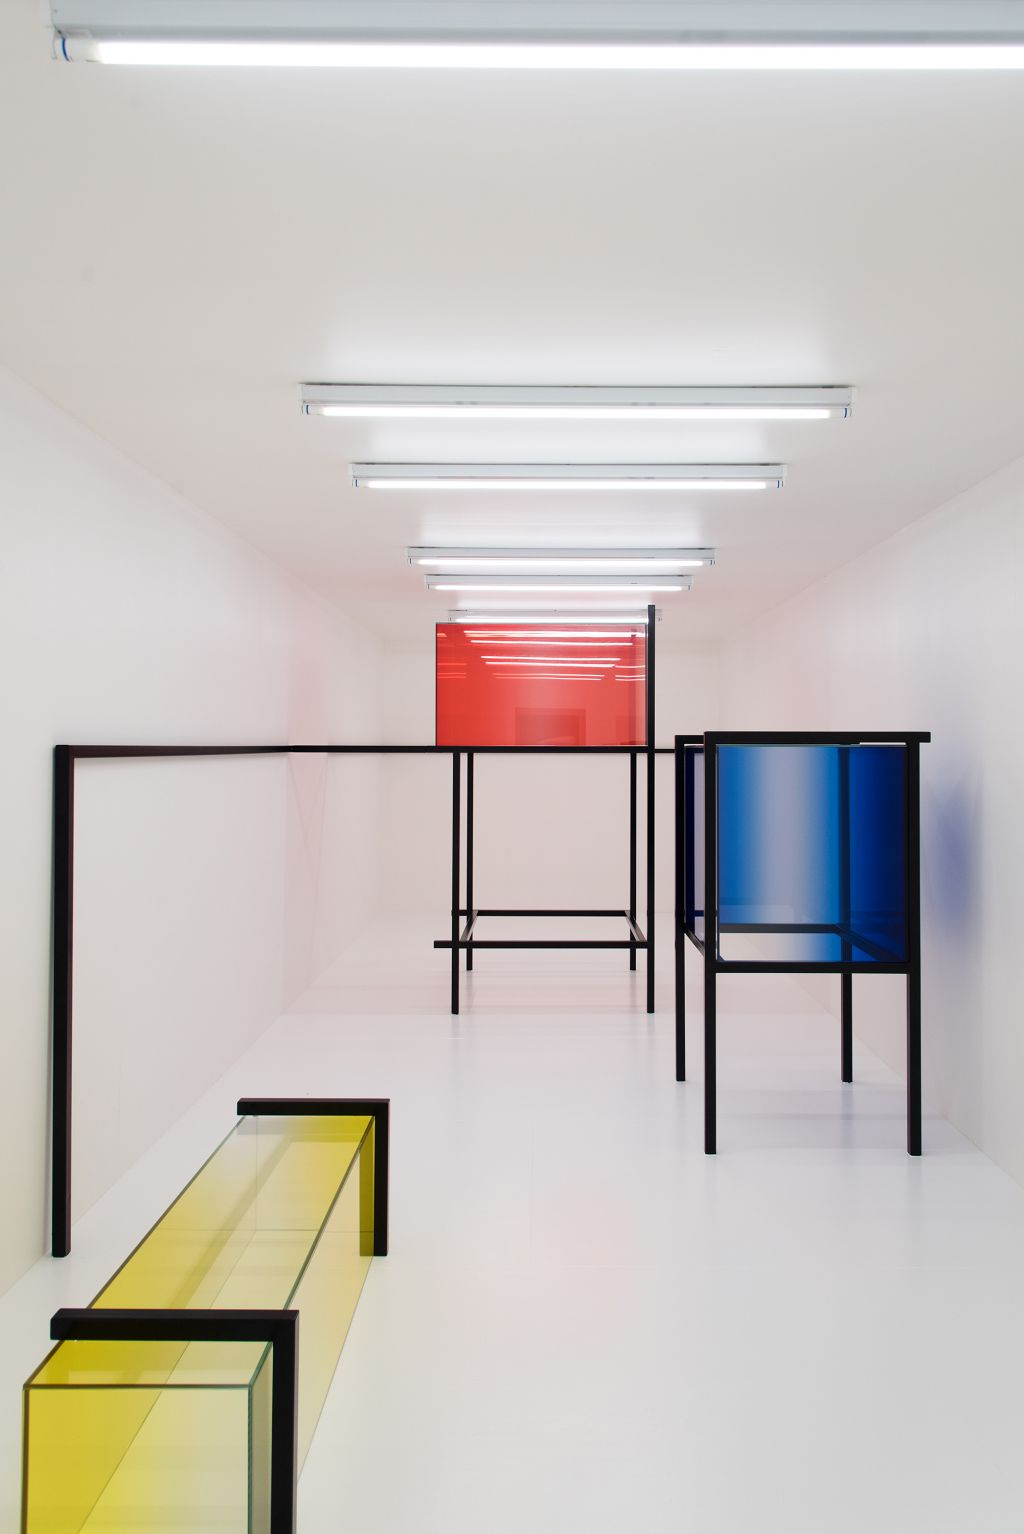 Spatial Composition in Red, Blue, and Yellow by Studio Sabine Marcelis. Photo Petra van der Ree